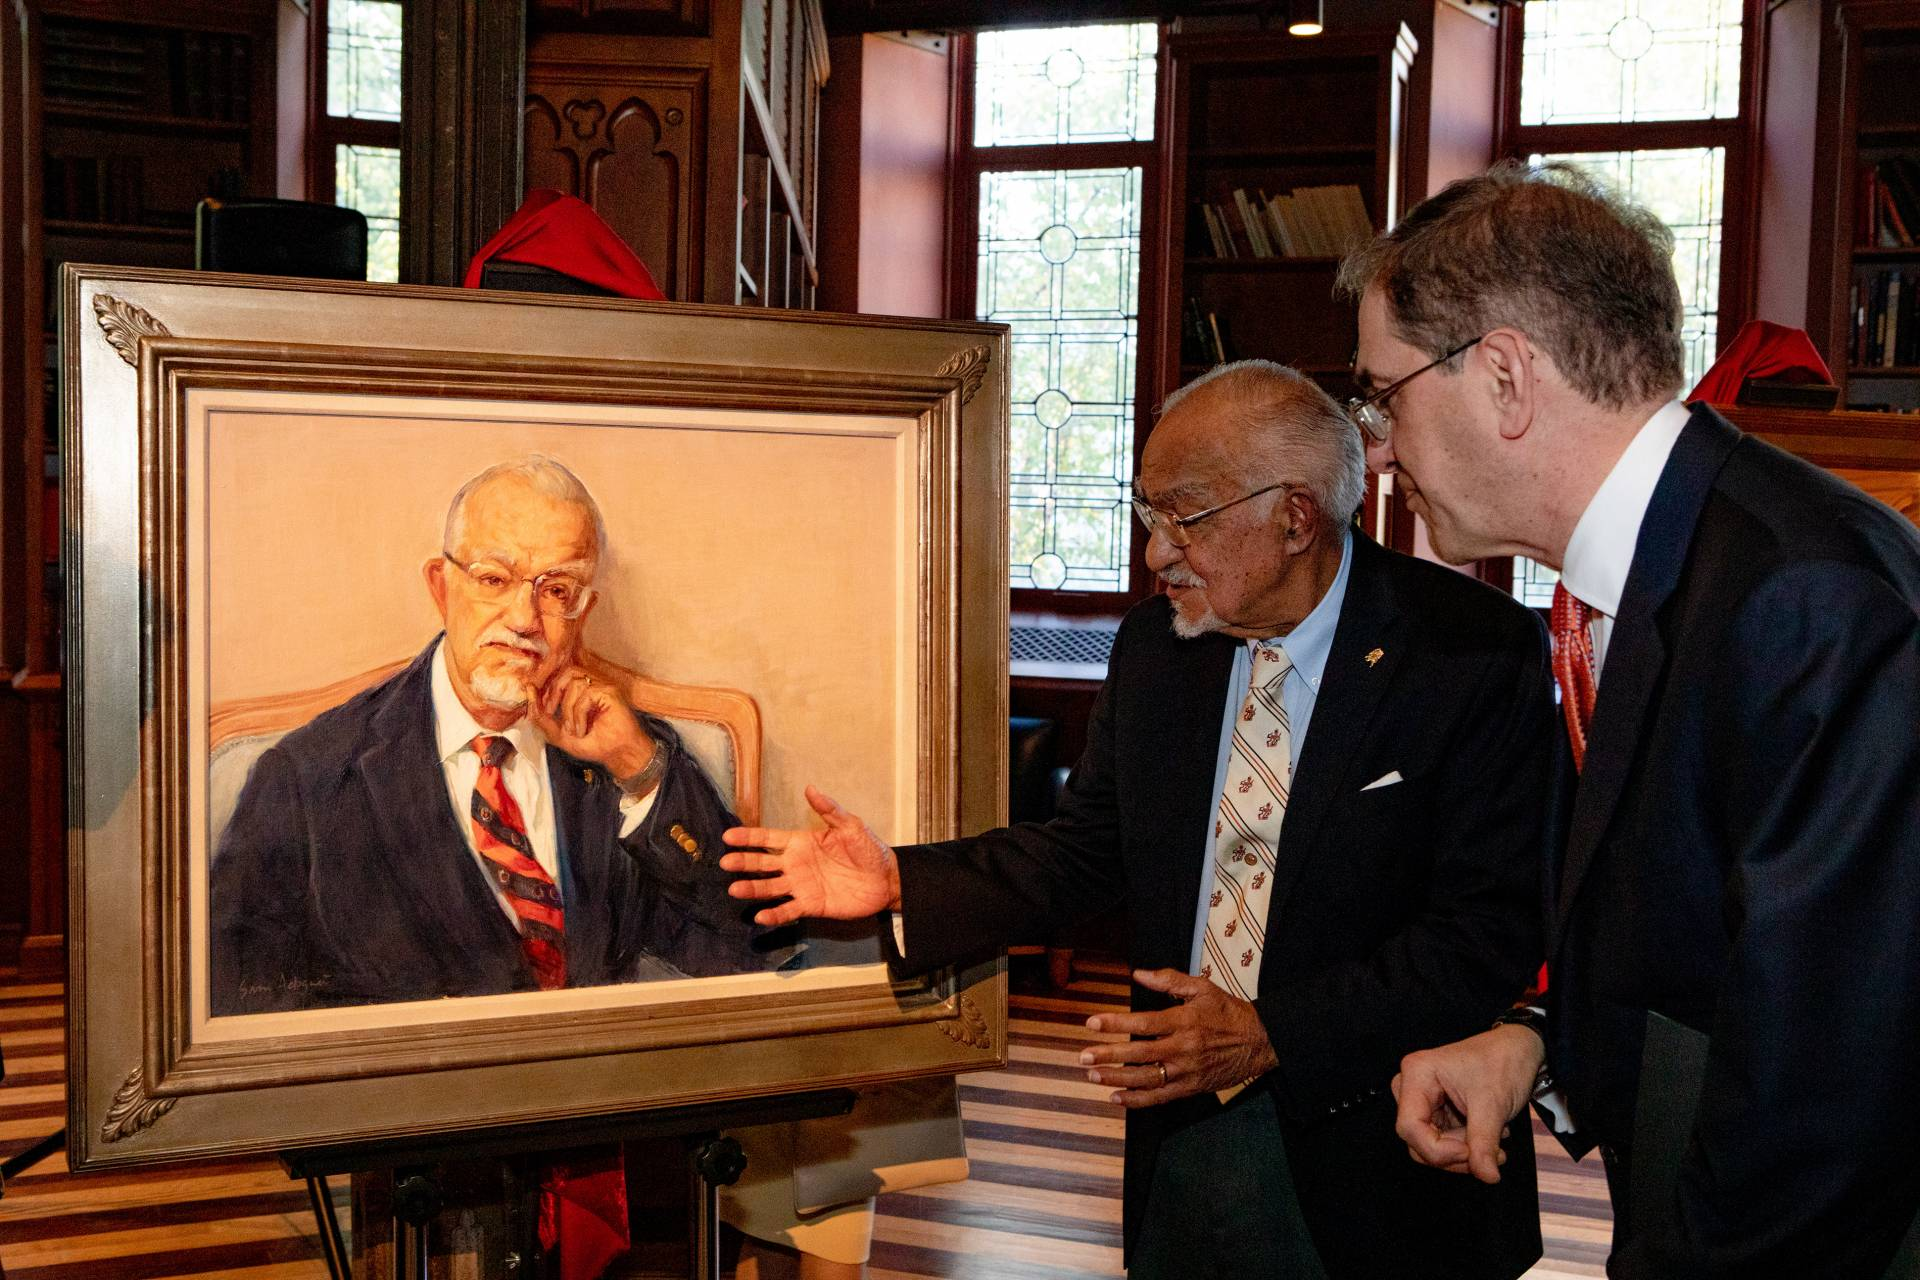 Rivers looks at his portrait with the president of the university